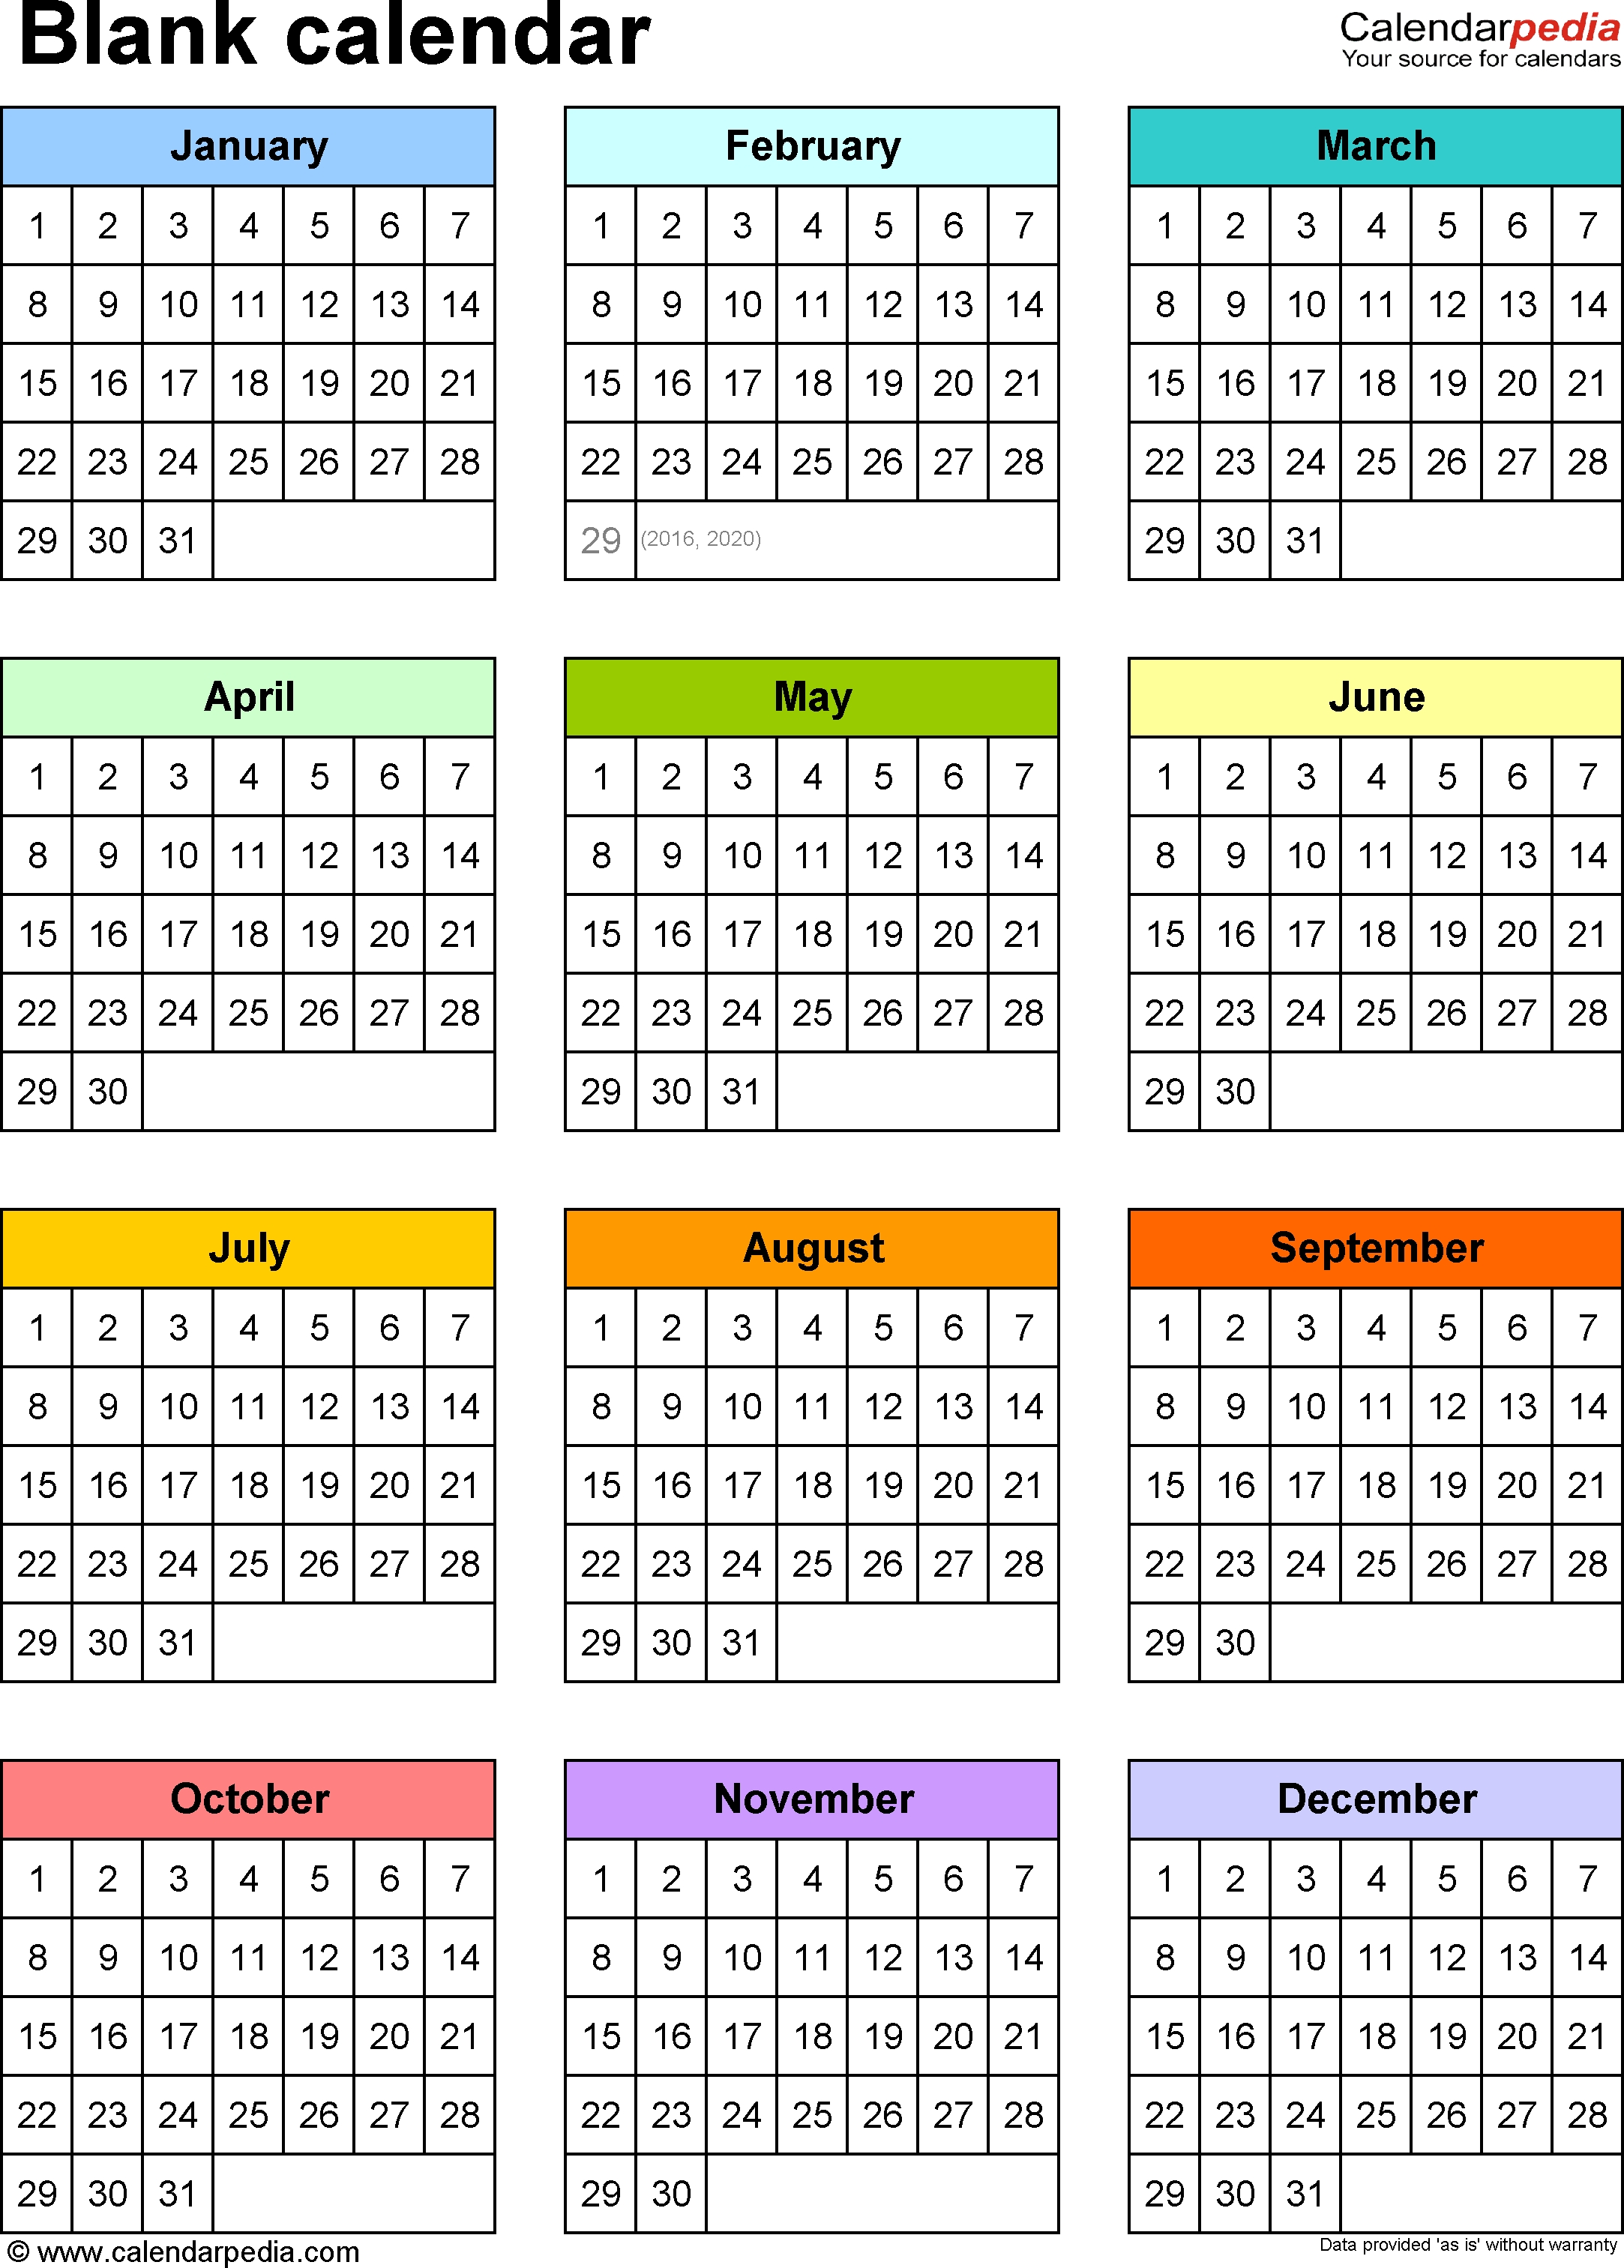 Blank Calendar - 9 Free Printable Microsoft Word Templates inside Year At A Glance Calendars Printable